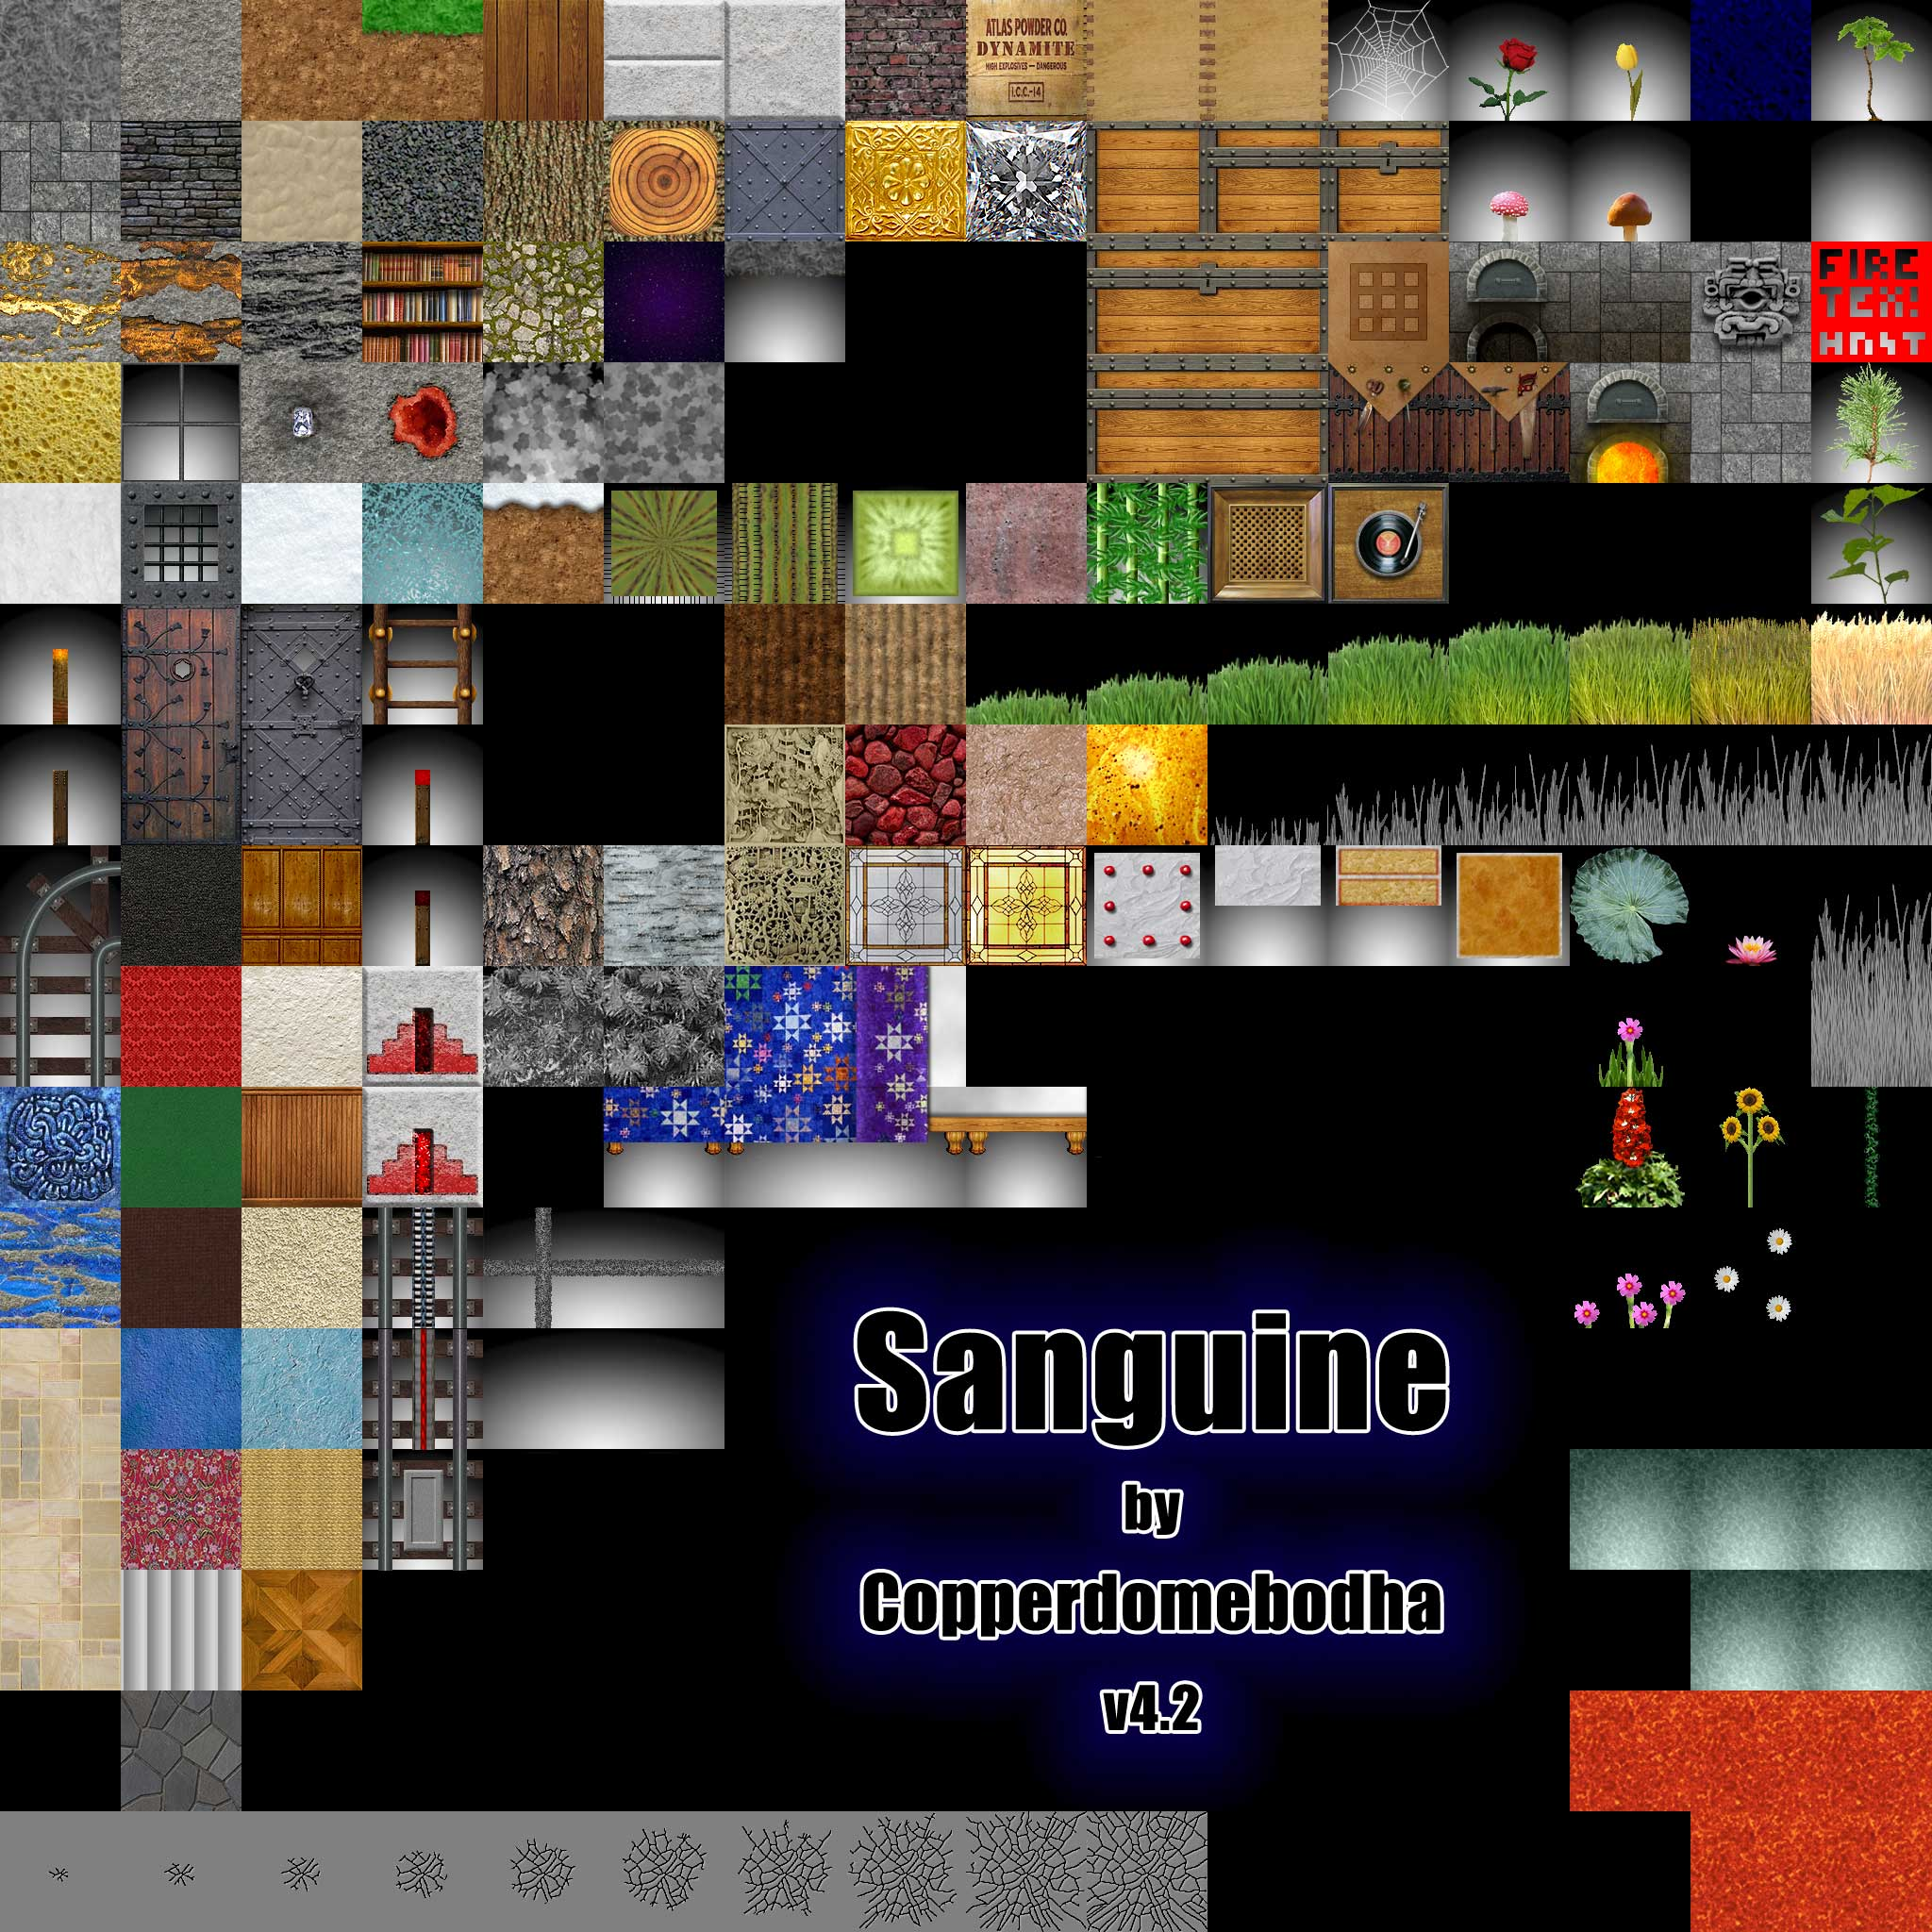 http://minecraft-forum.net/wp-content/uploads/2013/01/2bc76__Sanguine-ultra-realistic-texture-pack-1.jpg